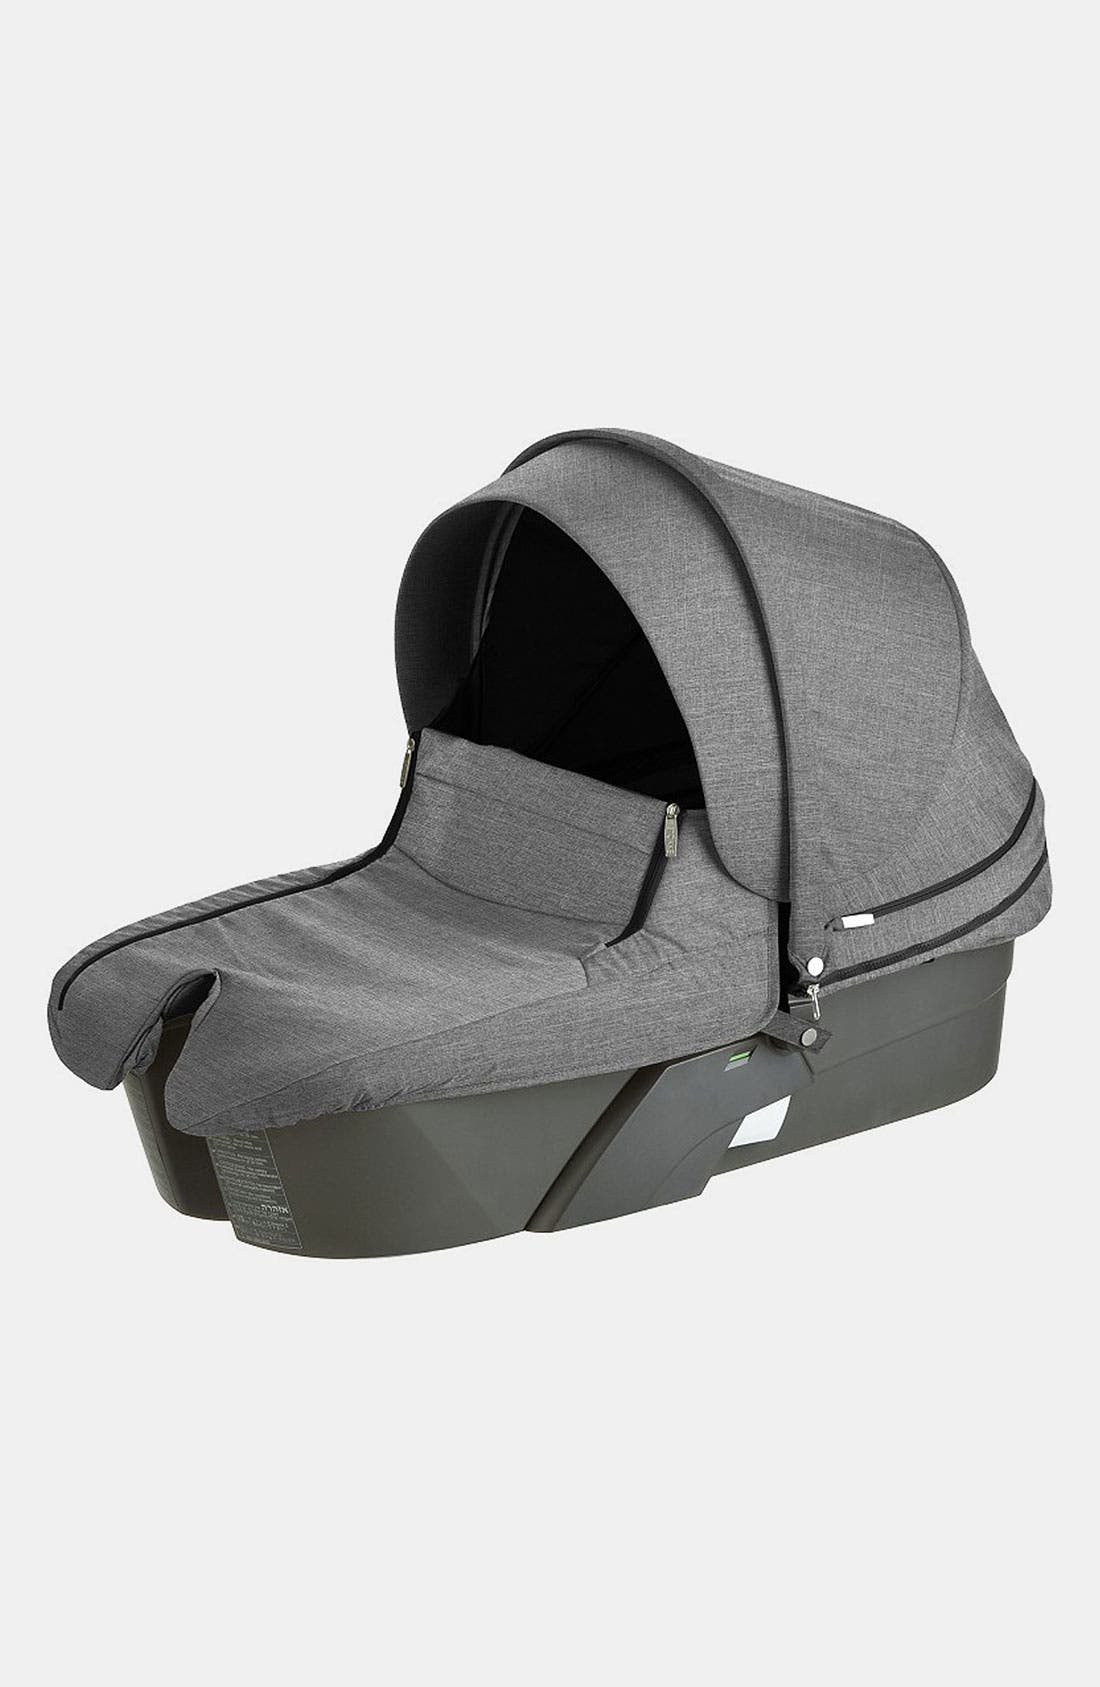 Main Image - Stokke 'Xplory®' Stroller Carry Cot